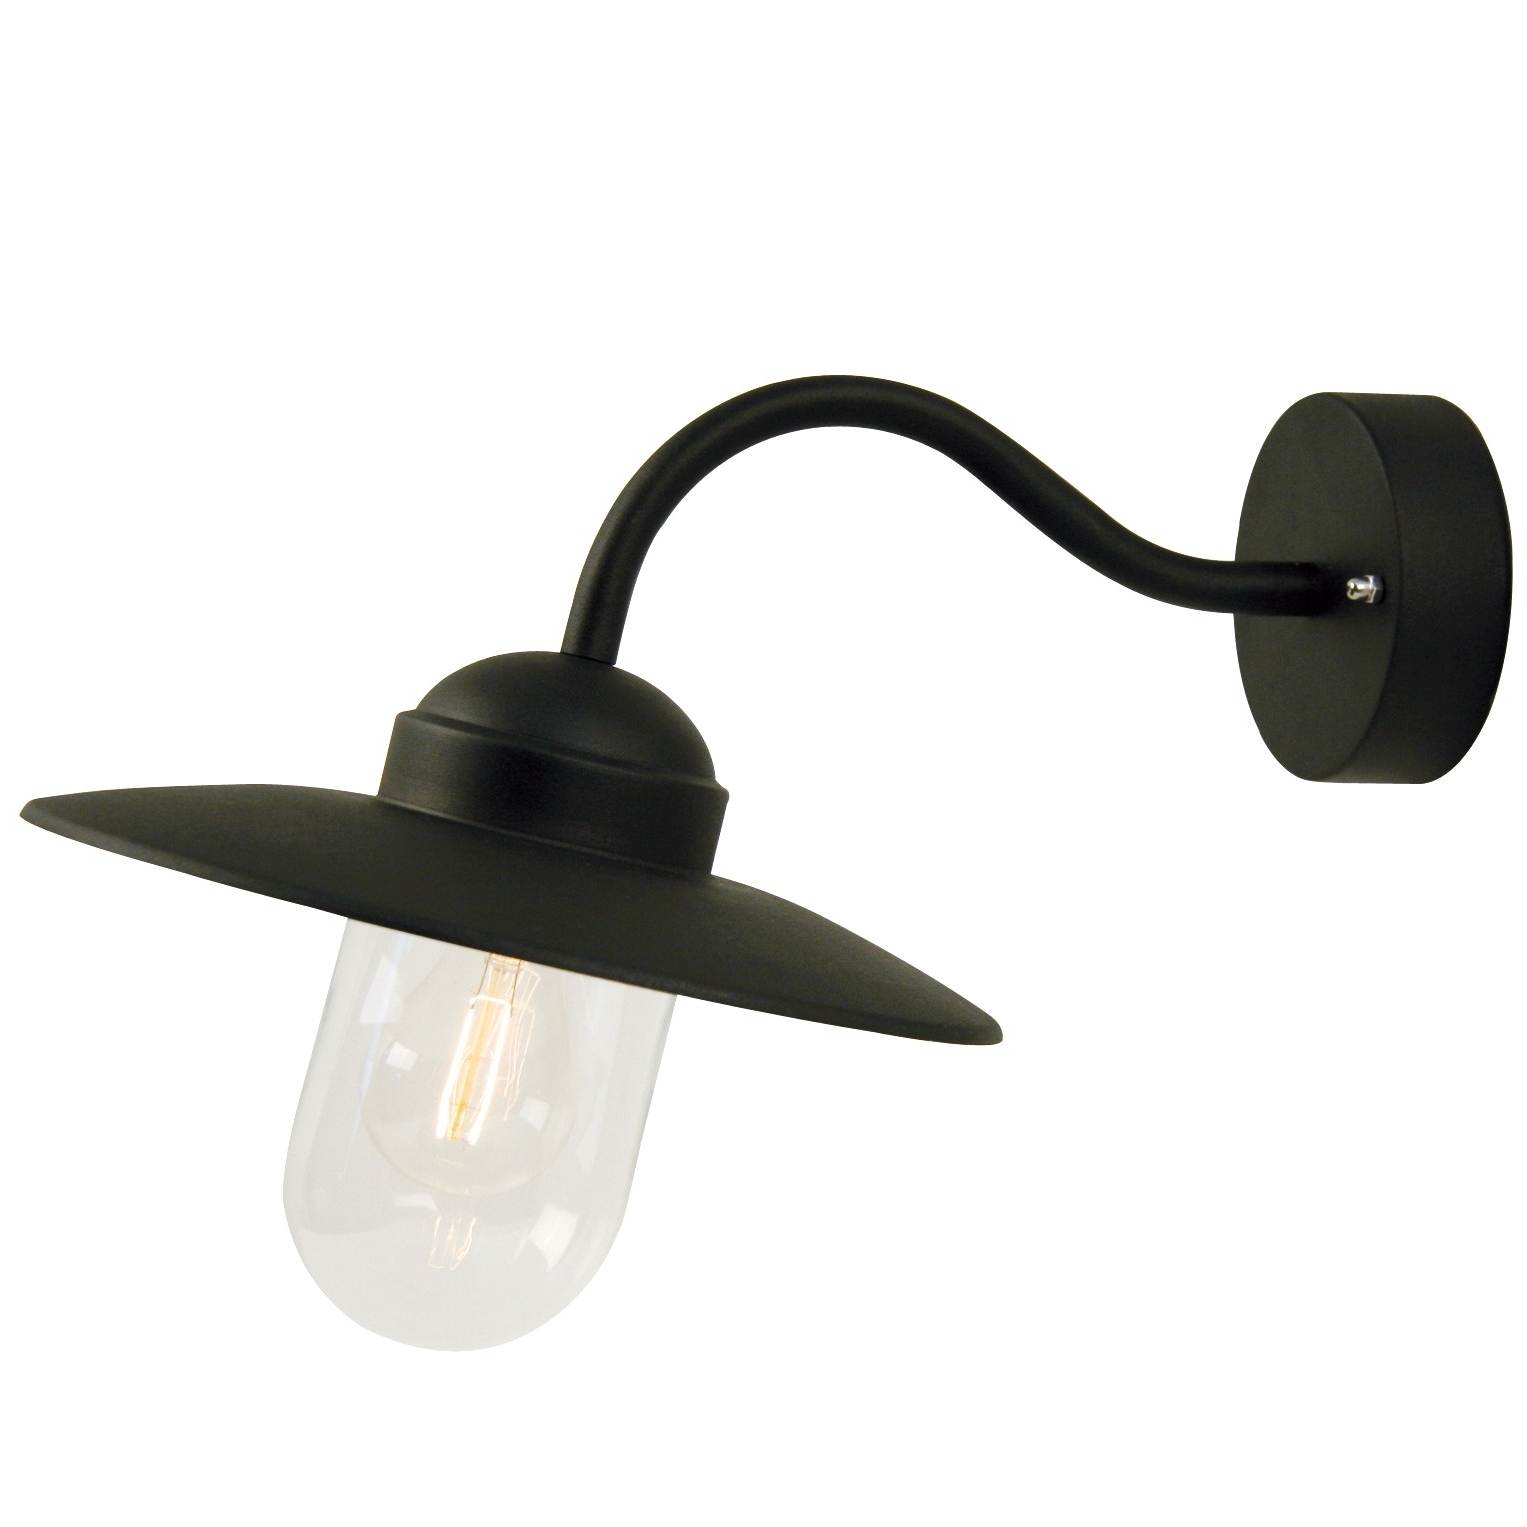 Madlonsbigbear Regarding Trendy Outdoor Wall Lights At John Lewis (View 2 of 20)